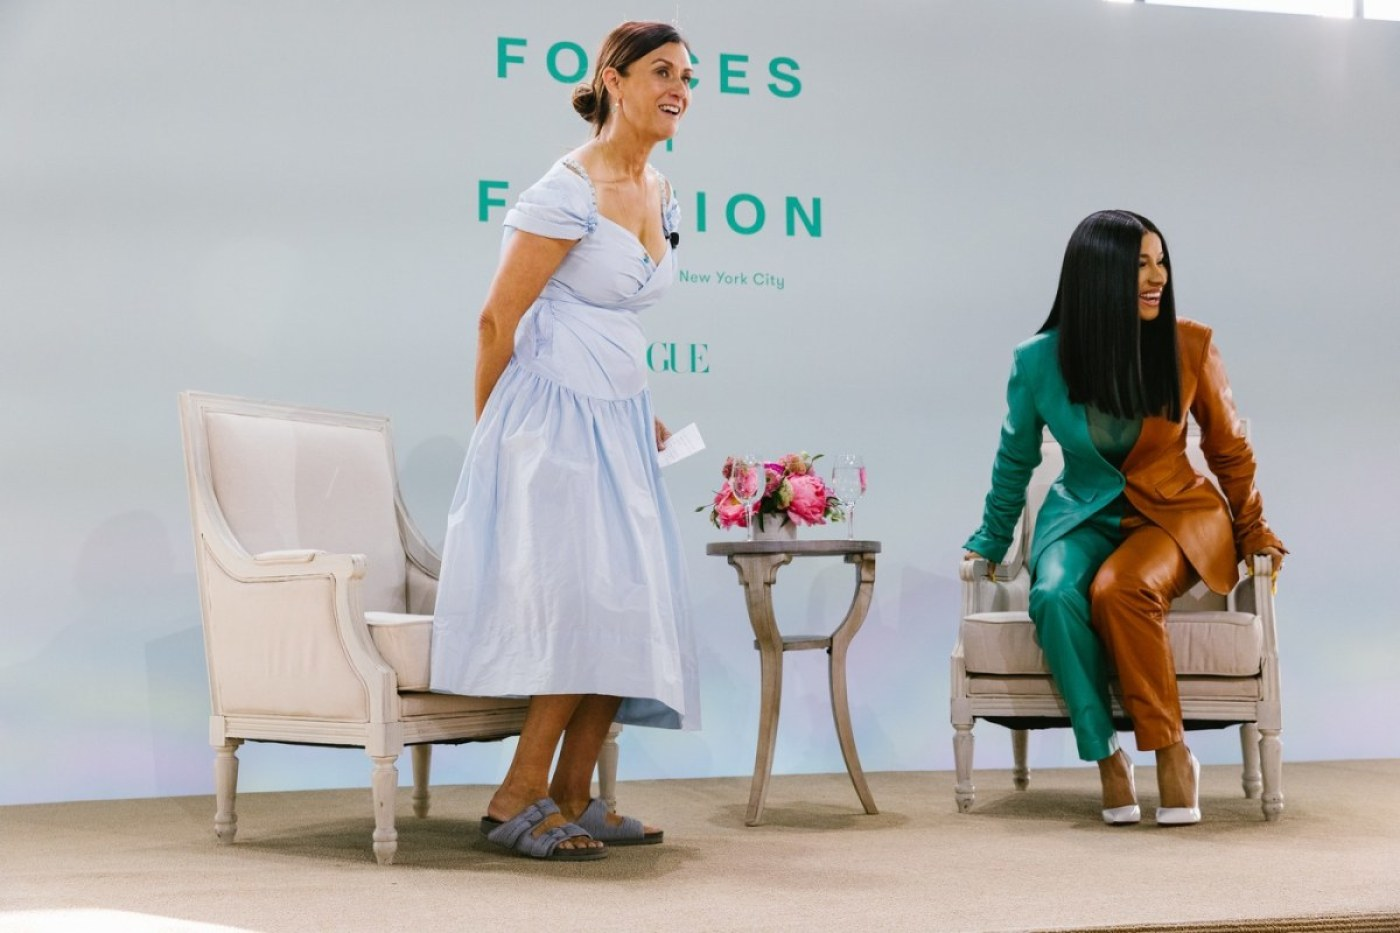 Sally Singer and Cardi B speaking on Vogue's Forces of Fashion panel. Photo: Corey Tenold for Vogue Magazine